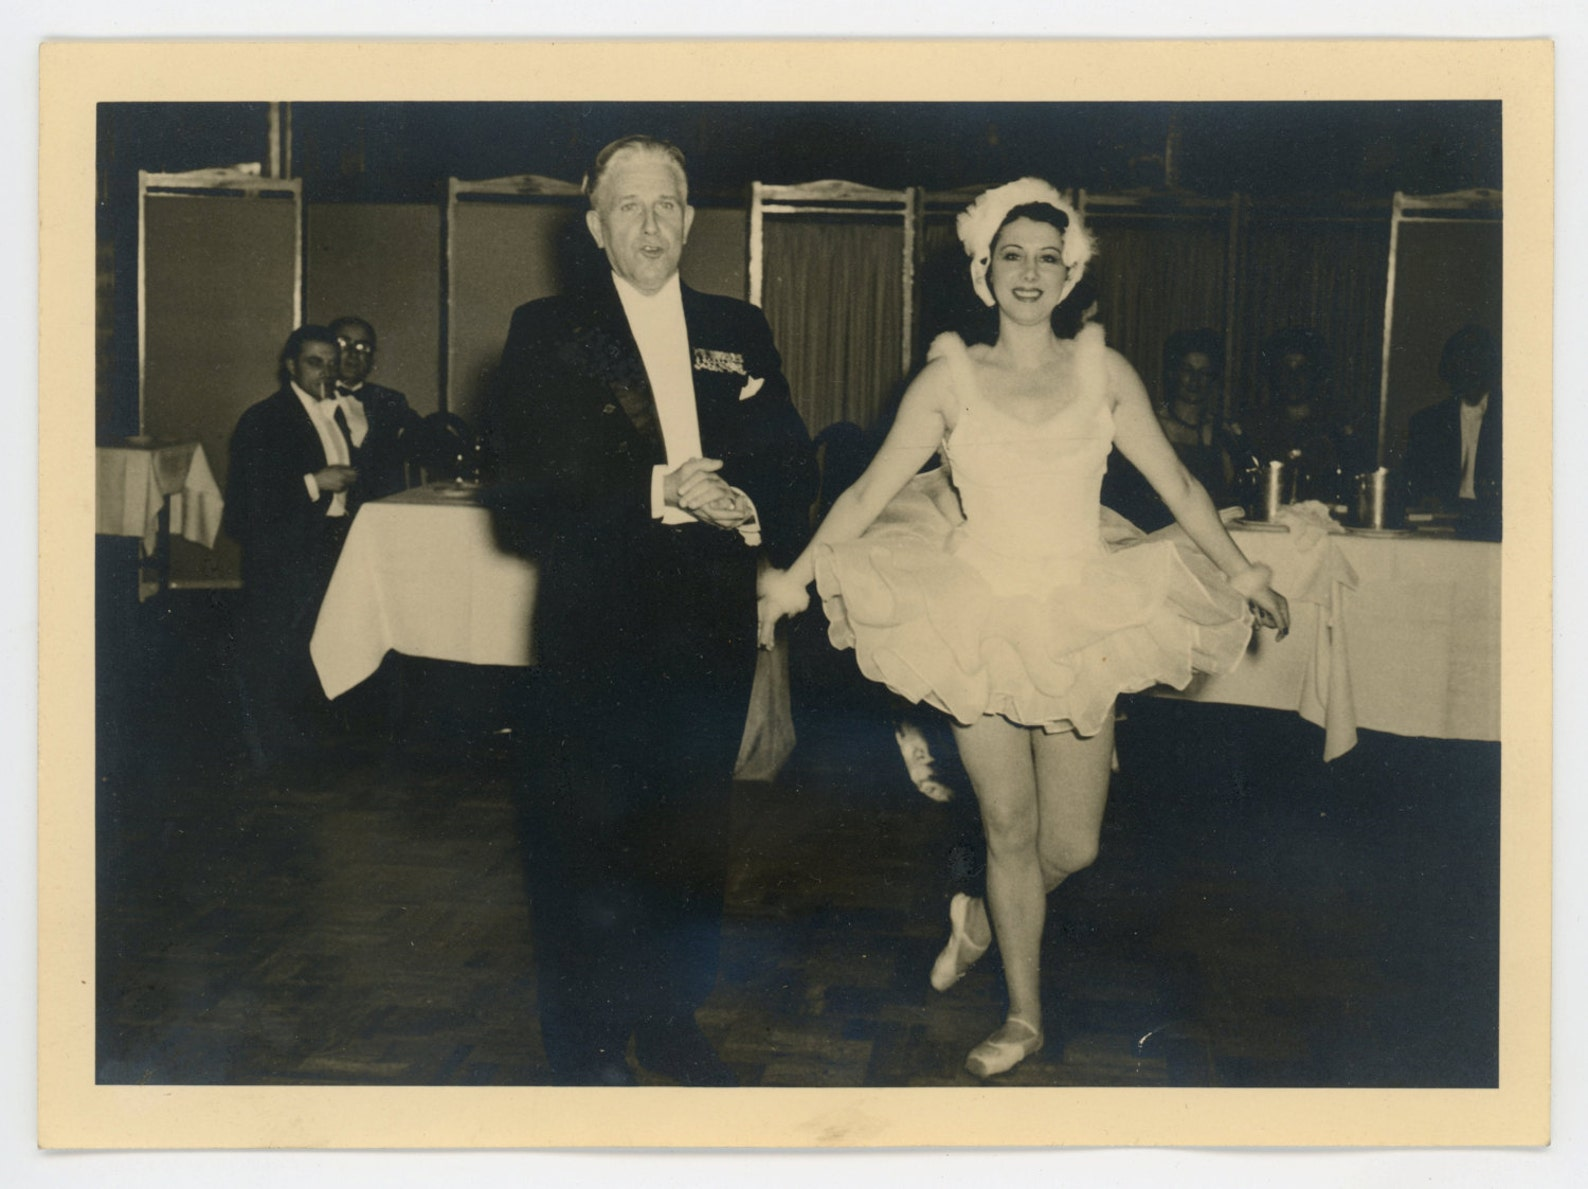 ballerina and gentleman - 1950s vintage photograph - toe shoes- tutu- man in tuxedo- ballet dancer- paper ephemera